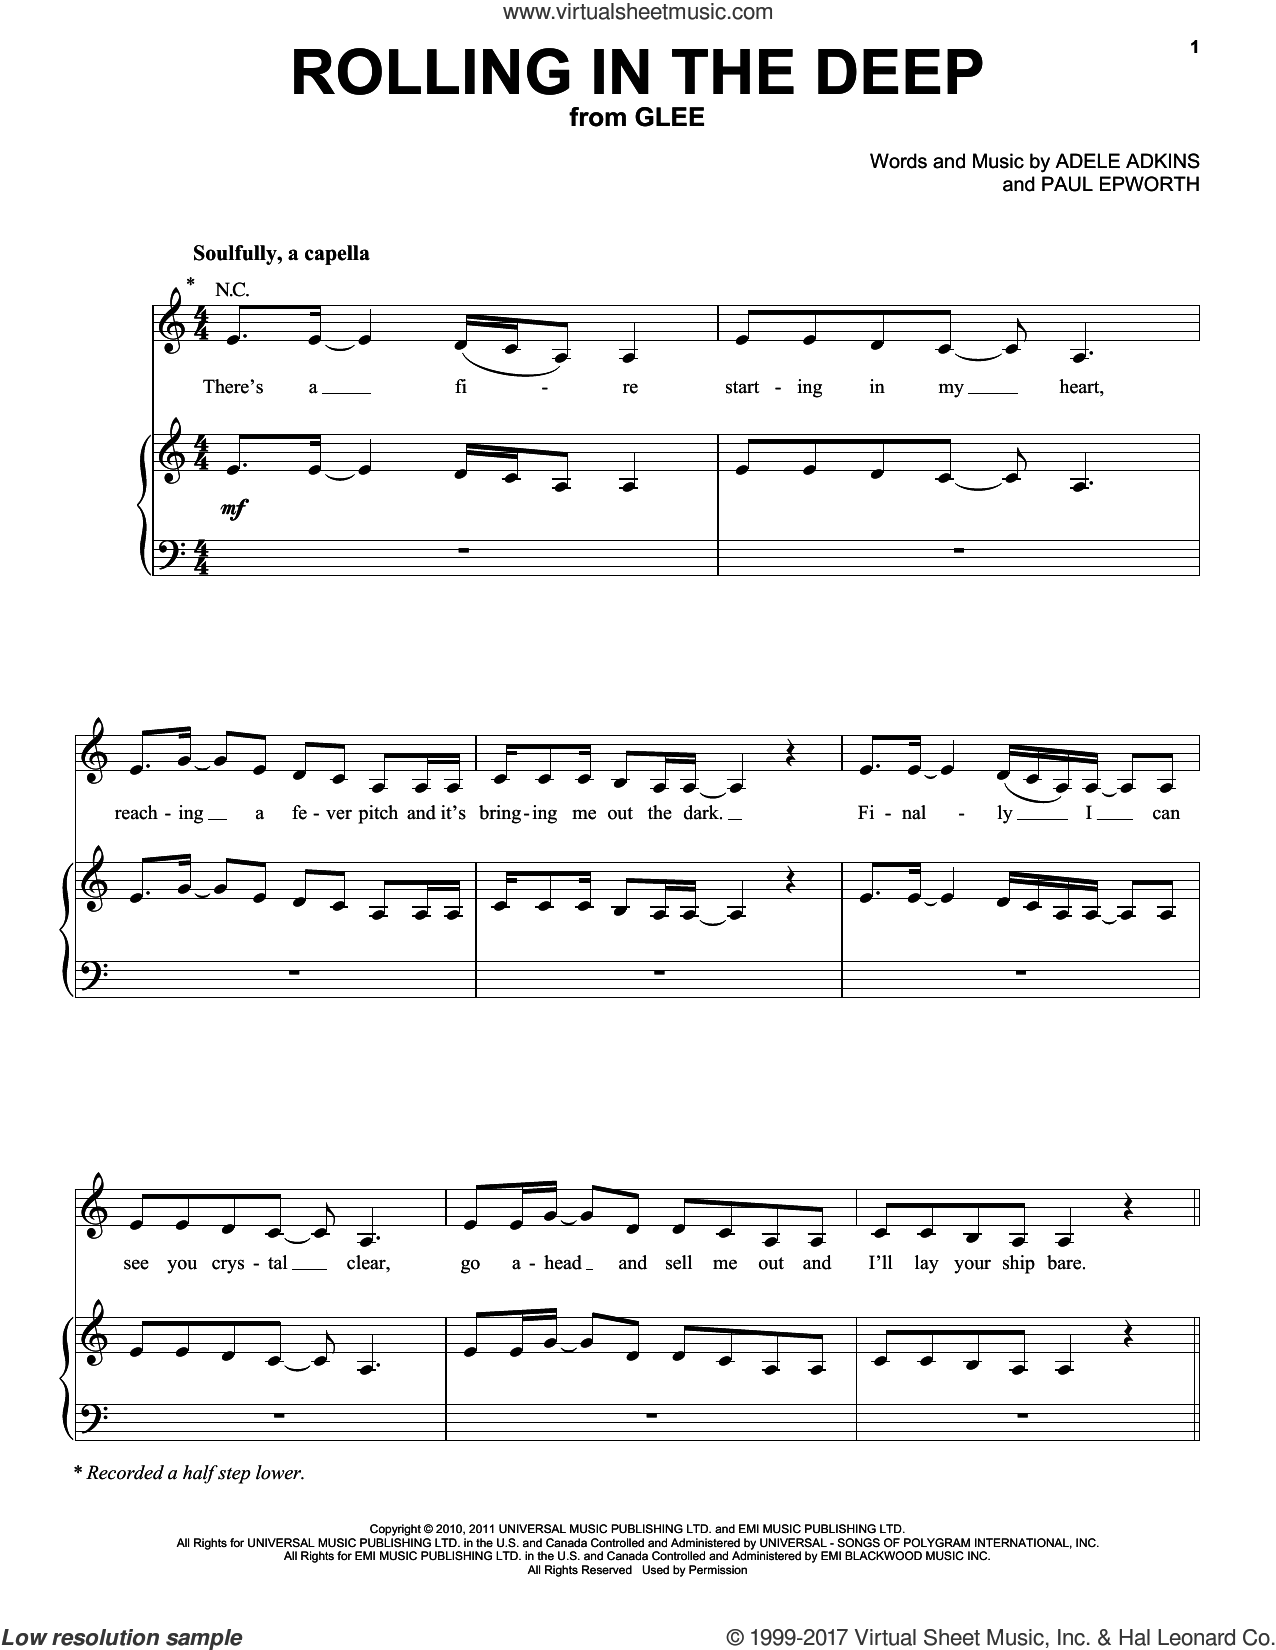 Rolling In The Deep sheet music for voice, piano or guitar by Glee Cast, Adele, Jonathan Groff, Adele Adkins, Miscellaneous and Paul Epworth, intermediate skill level